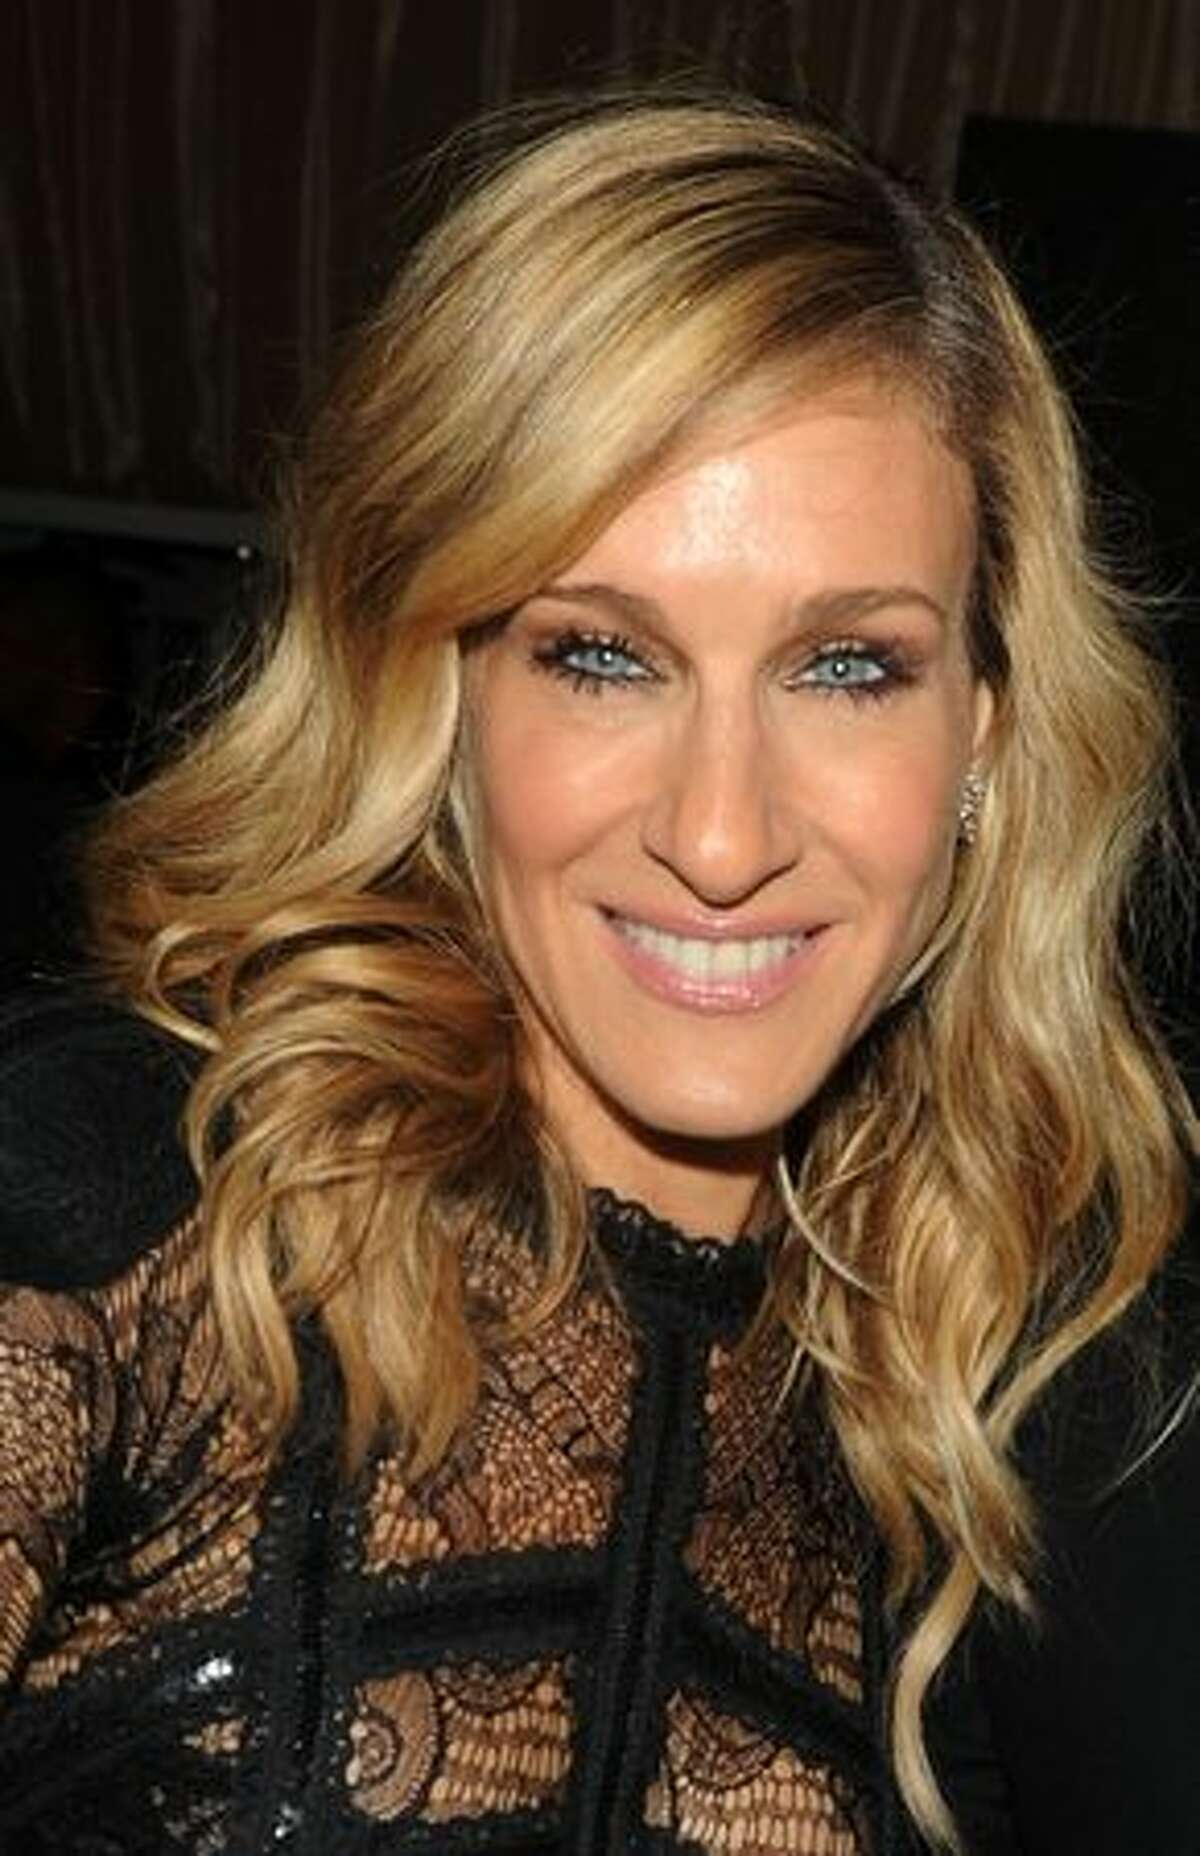 Actress Sarah Jessica Parker attends the after party following the premiere of